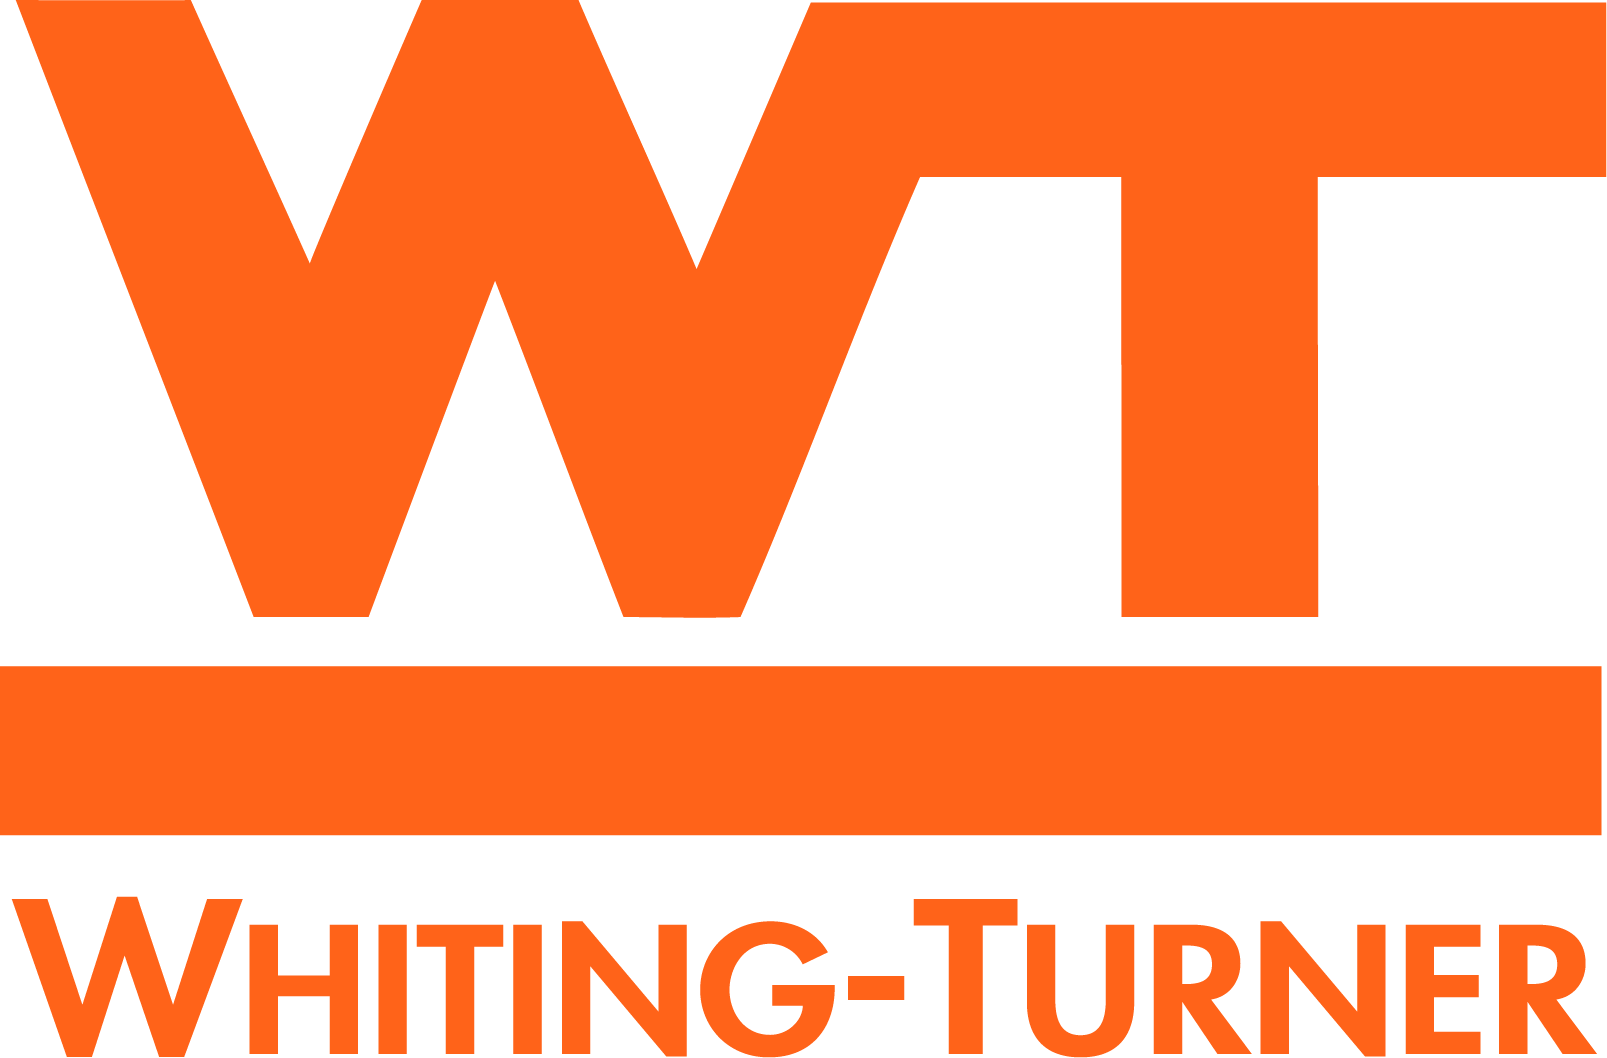 Whiting-Turner-logo